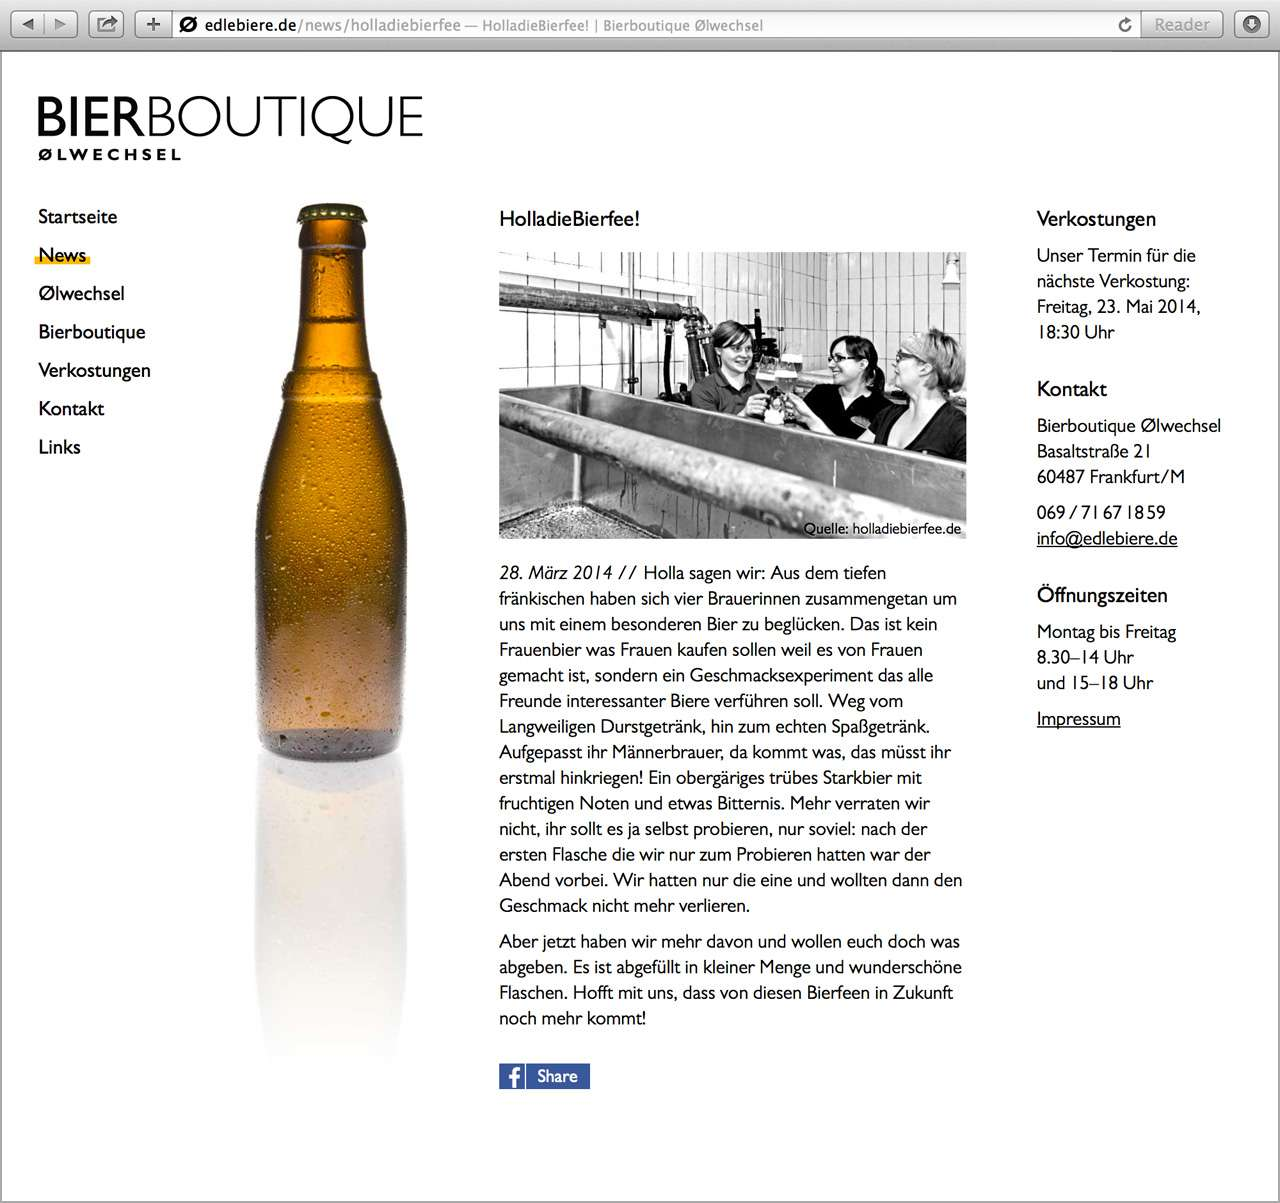 Screenshot der Website der Bierboutique Ølwechsel – News-Bereich